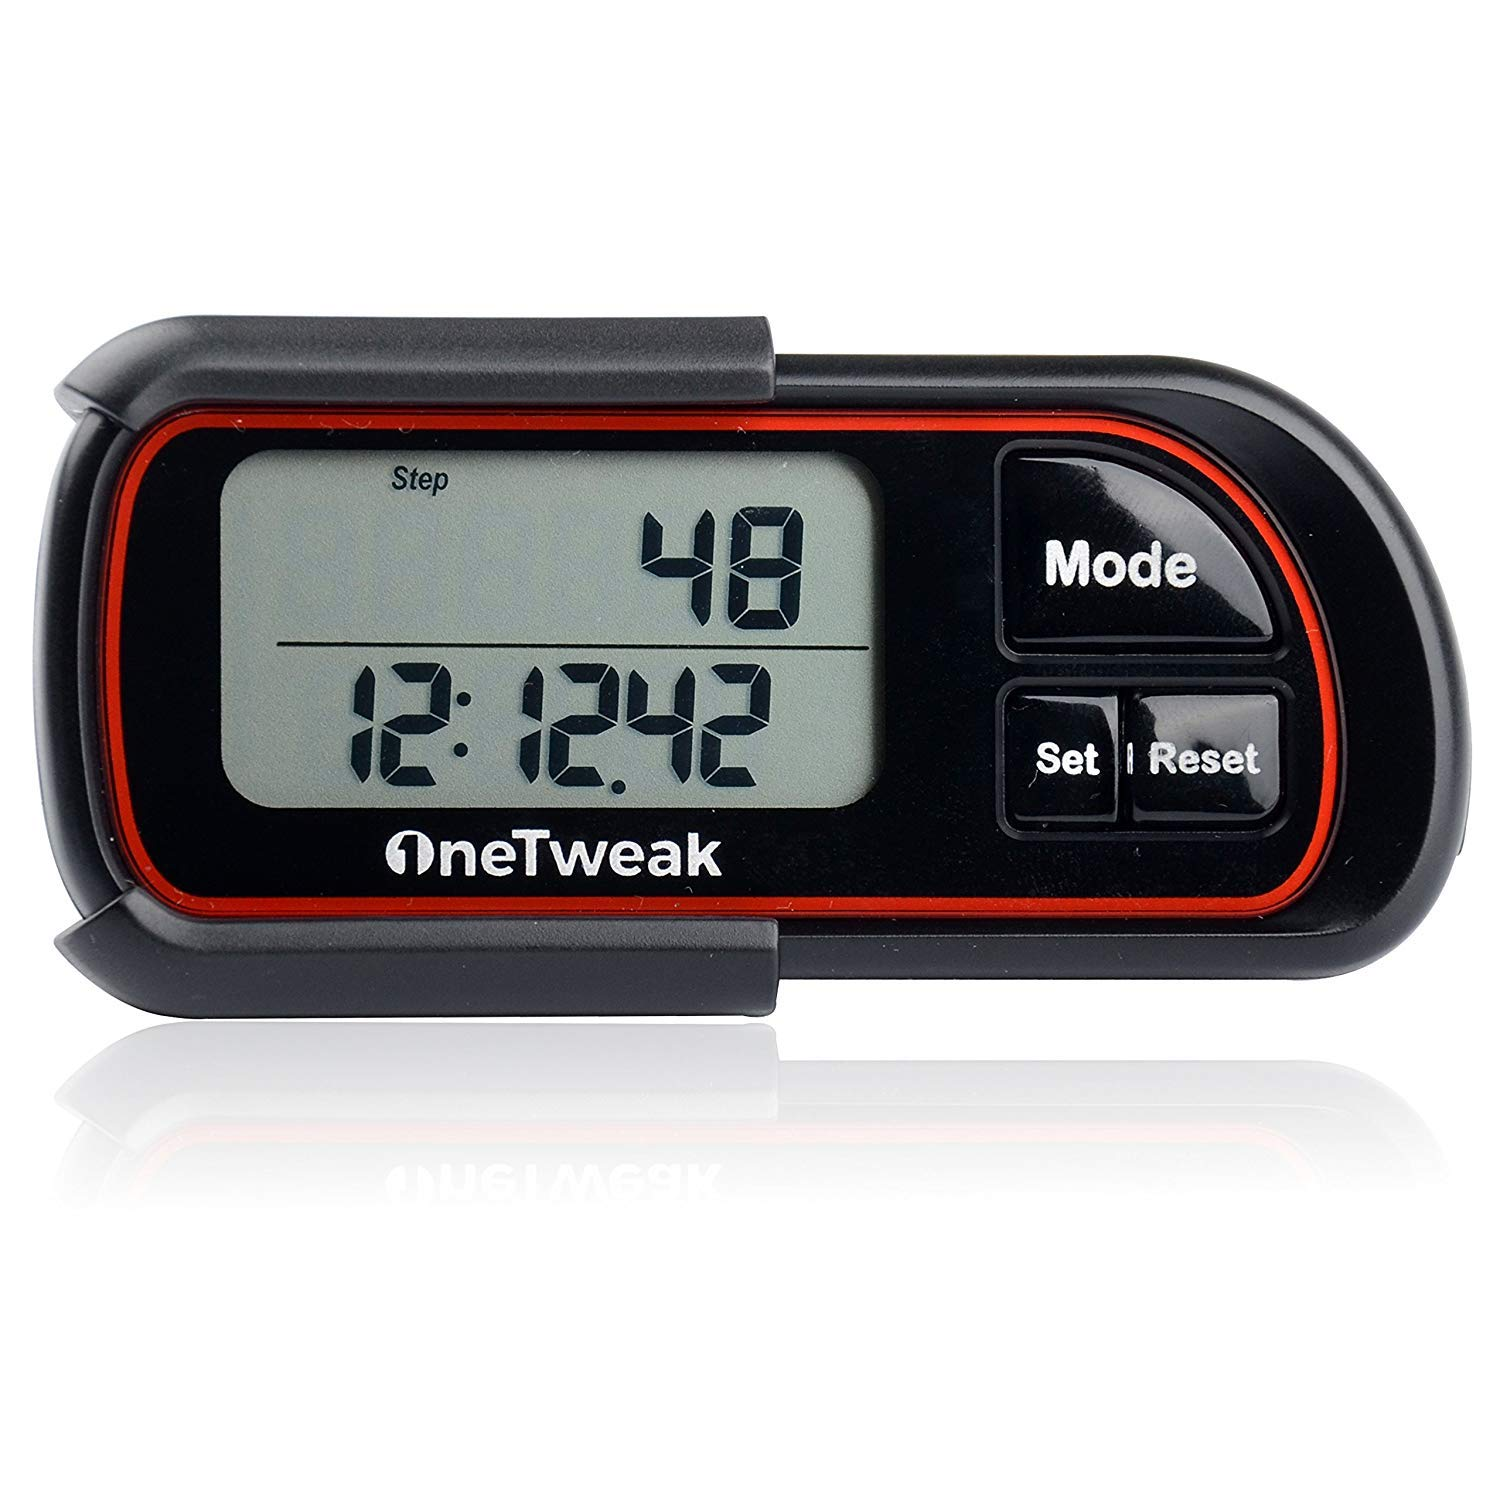 OneTweak New EZ-1 Pedometer for Walking. 3D Tri-Axis Clip-On. Back-to-Basics Step Counter. Simple to Use. Multi-Function. New Pause Function. Perfect Fitness Exercise Tool.